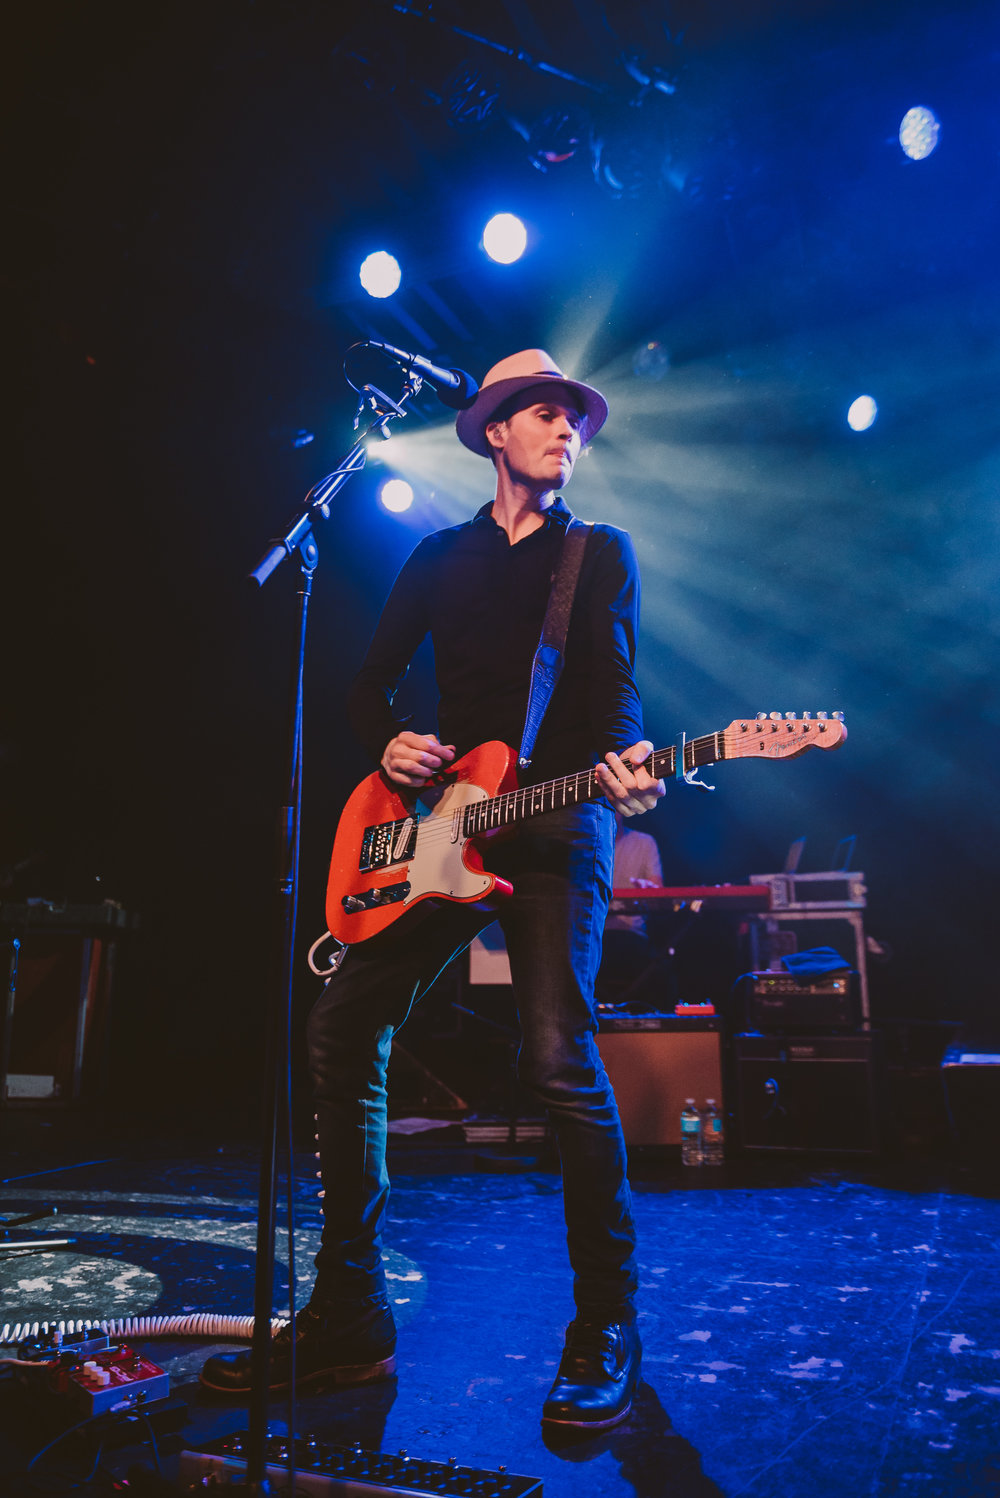 1_The_Fratellis-Commodore_Ballroom-Timothy_Nguyen-20180426 (5 of 22).jpg